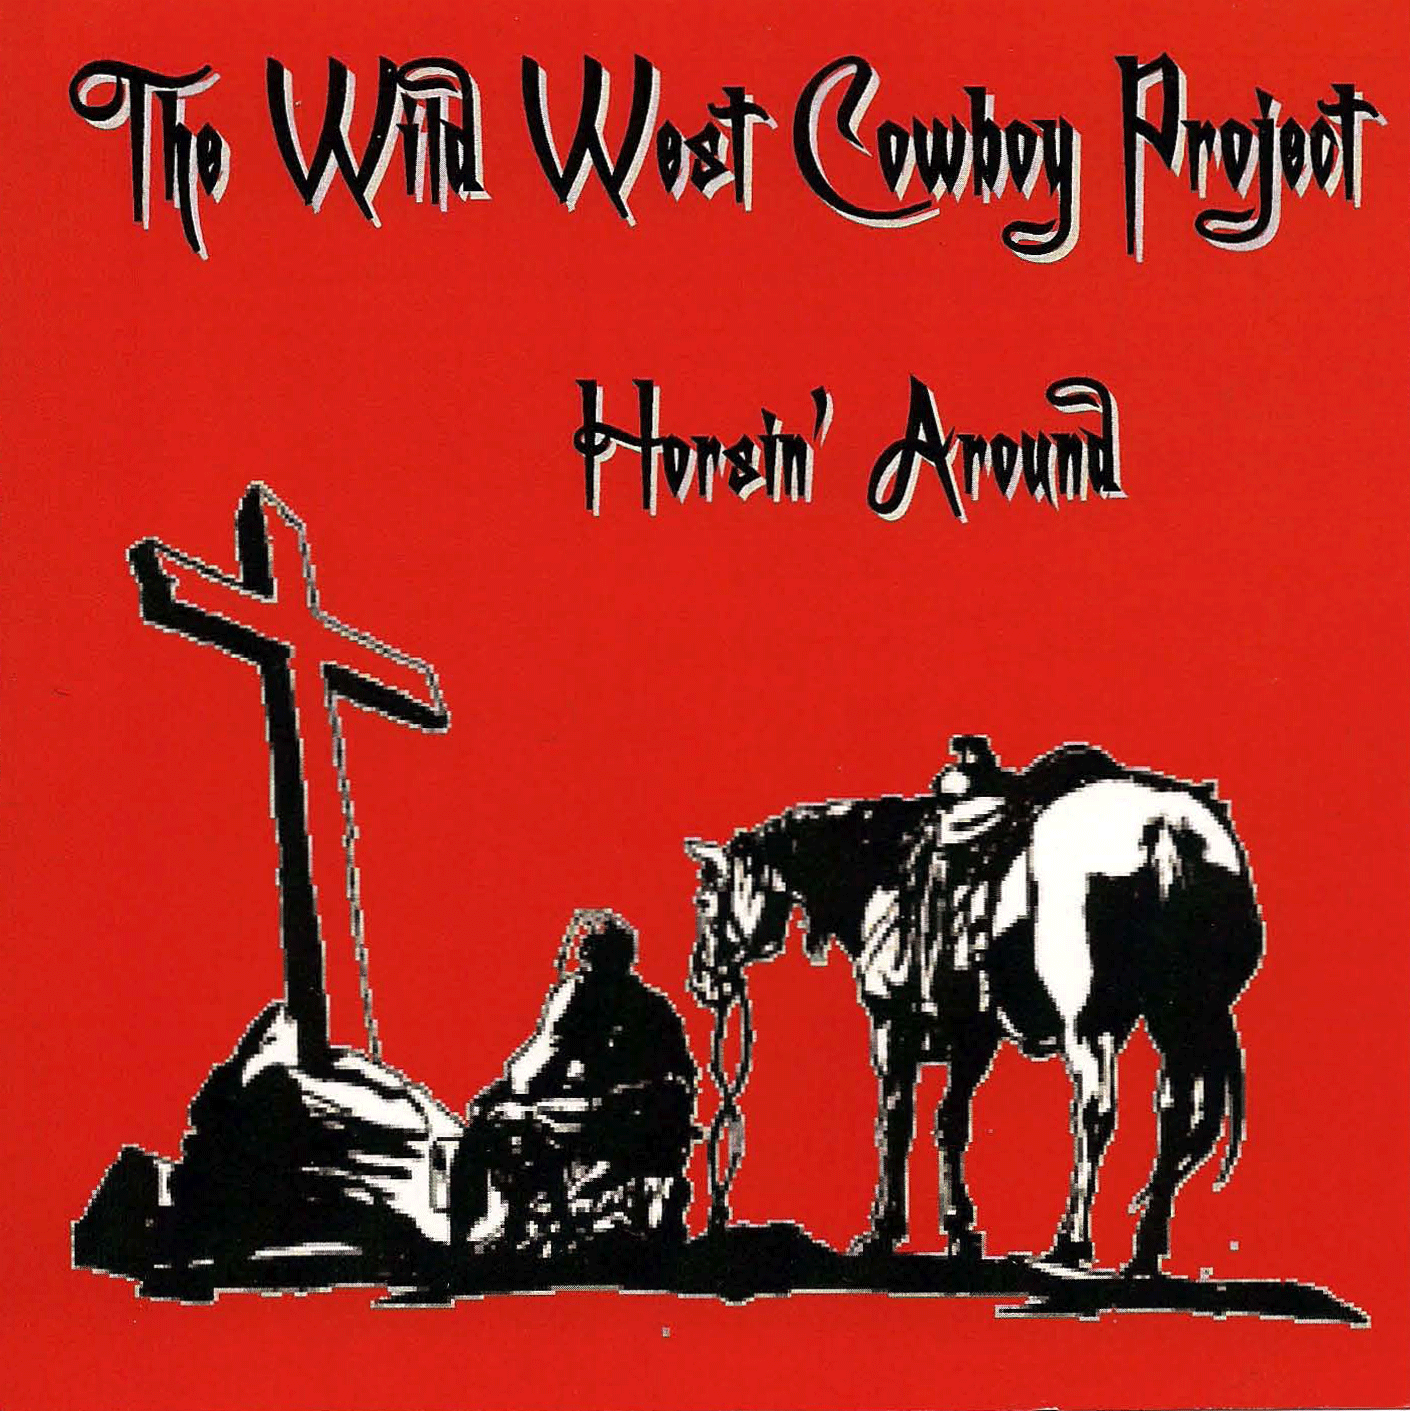 the wild west cowboy project